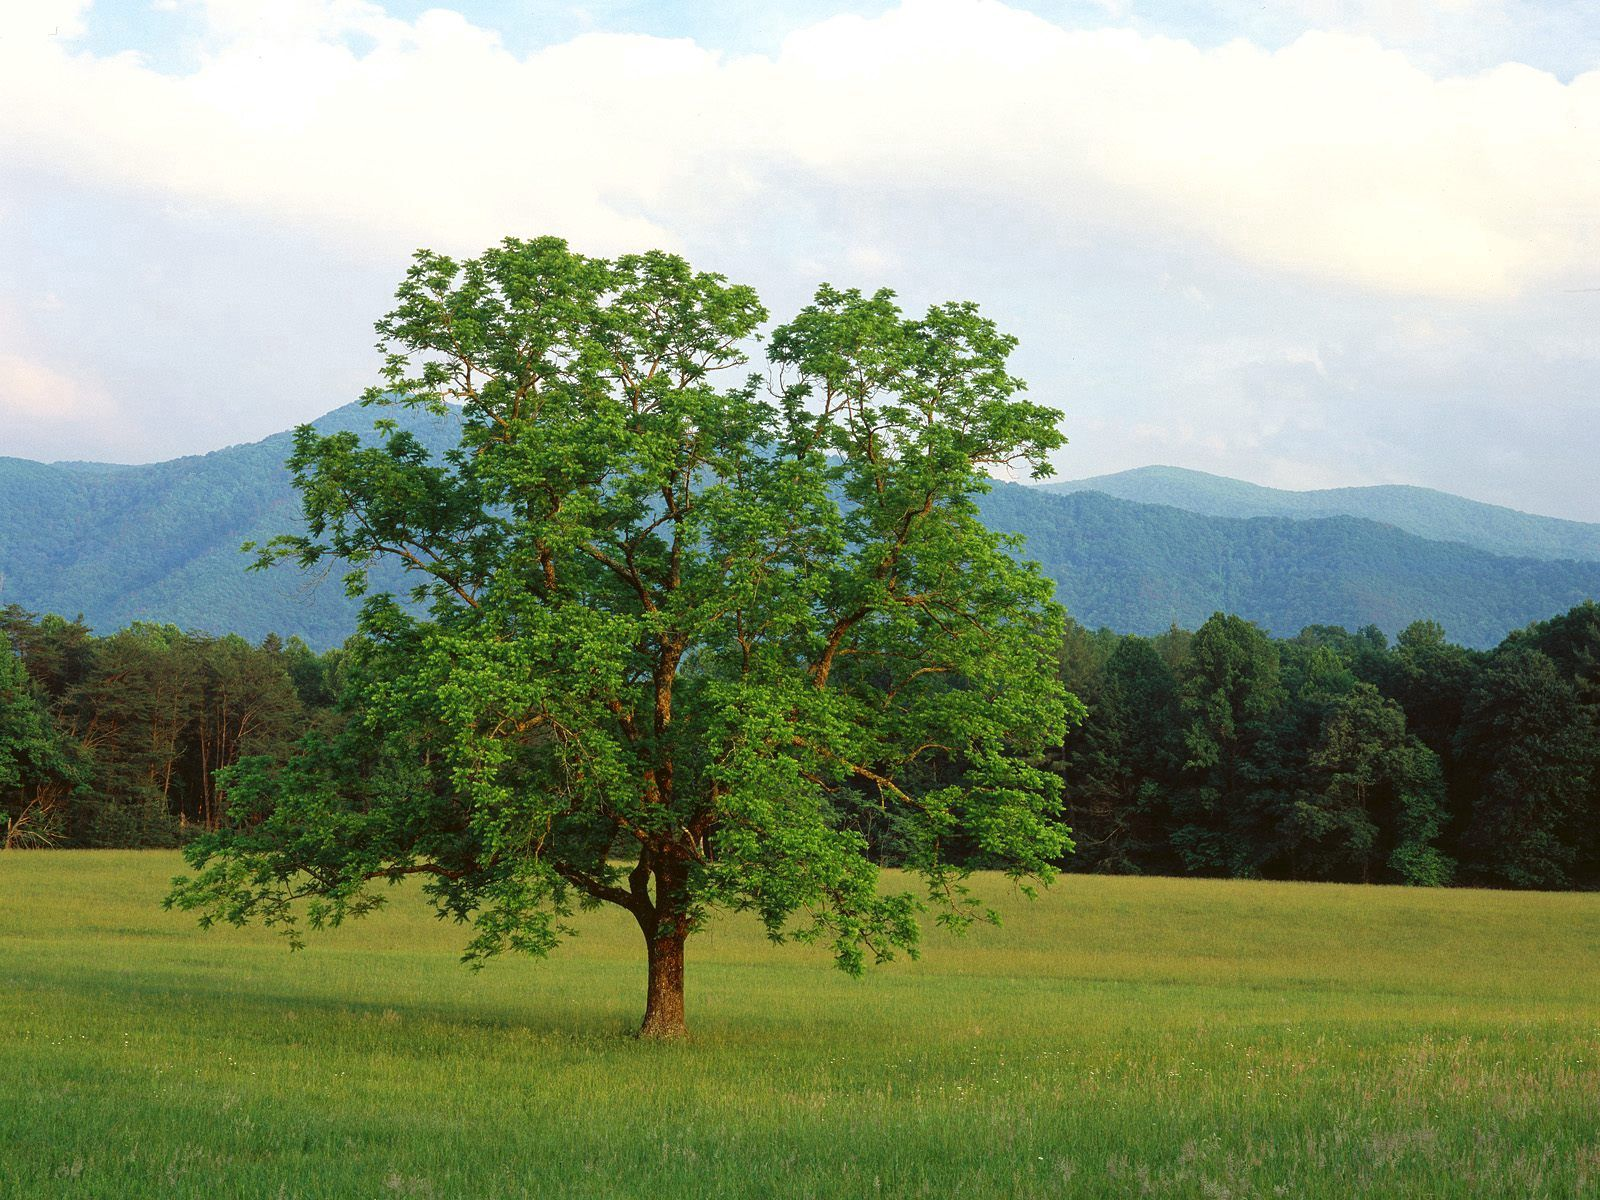 125914 download wallpaper Nature, Wood, Tree, Field, Lonely, Summer, Branches, Branch, Forest, Mountains screensavers and pictures for free